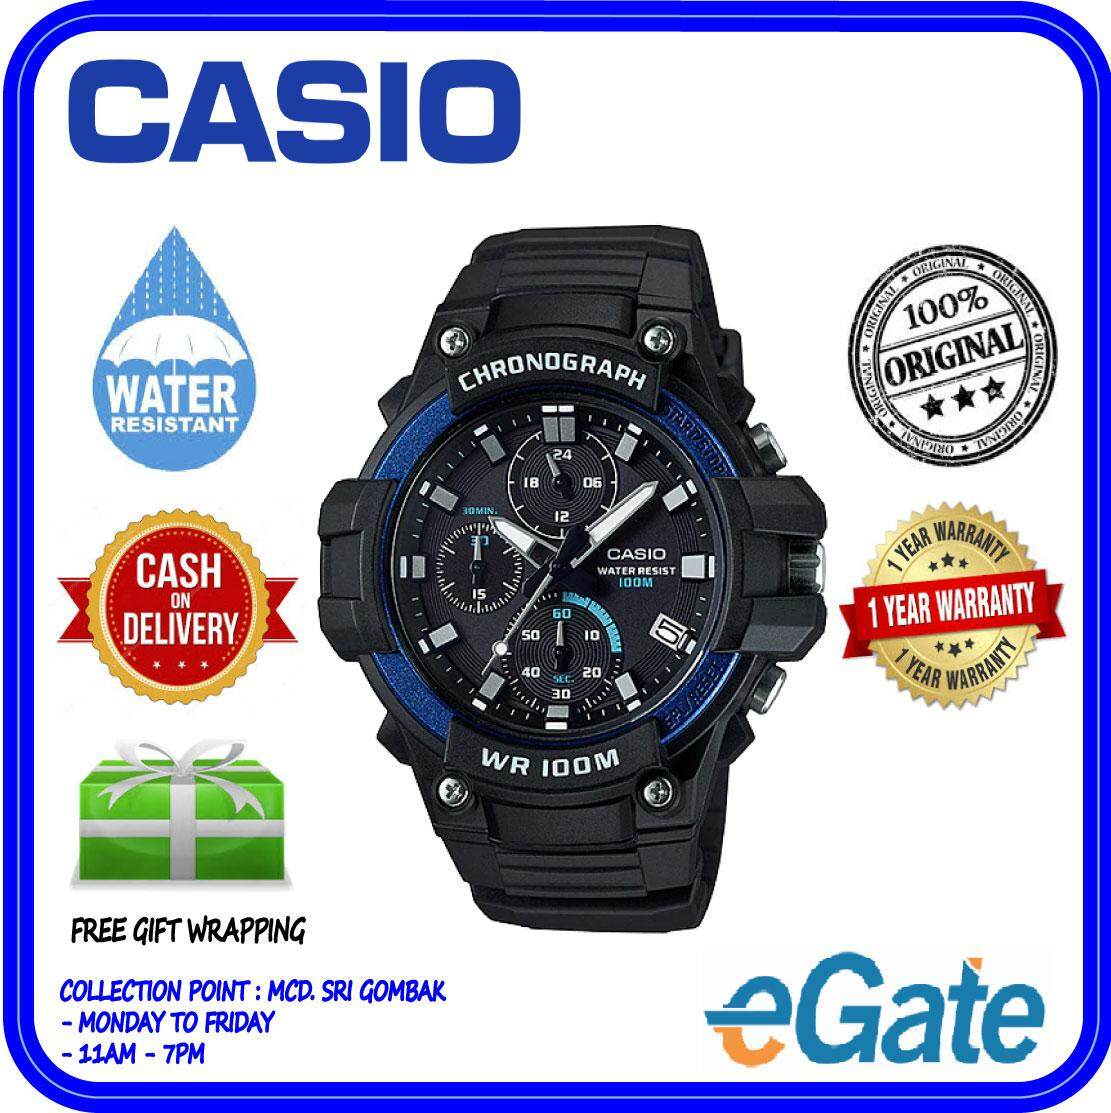 Casio Products For The Best Price In Malaysia G Shock Series Ga 100 Jam Tangan Pria Strap Resin Mcw 110h 2av Men Analog Chronograph Date Display Classic Black Blue Case